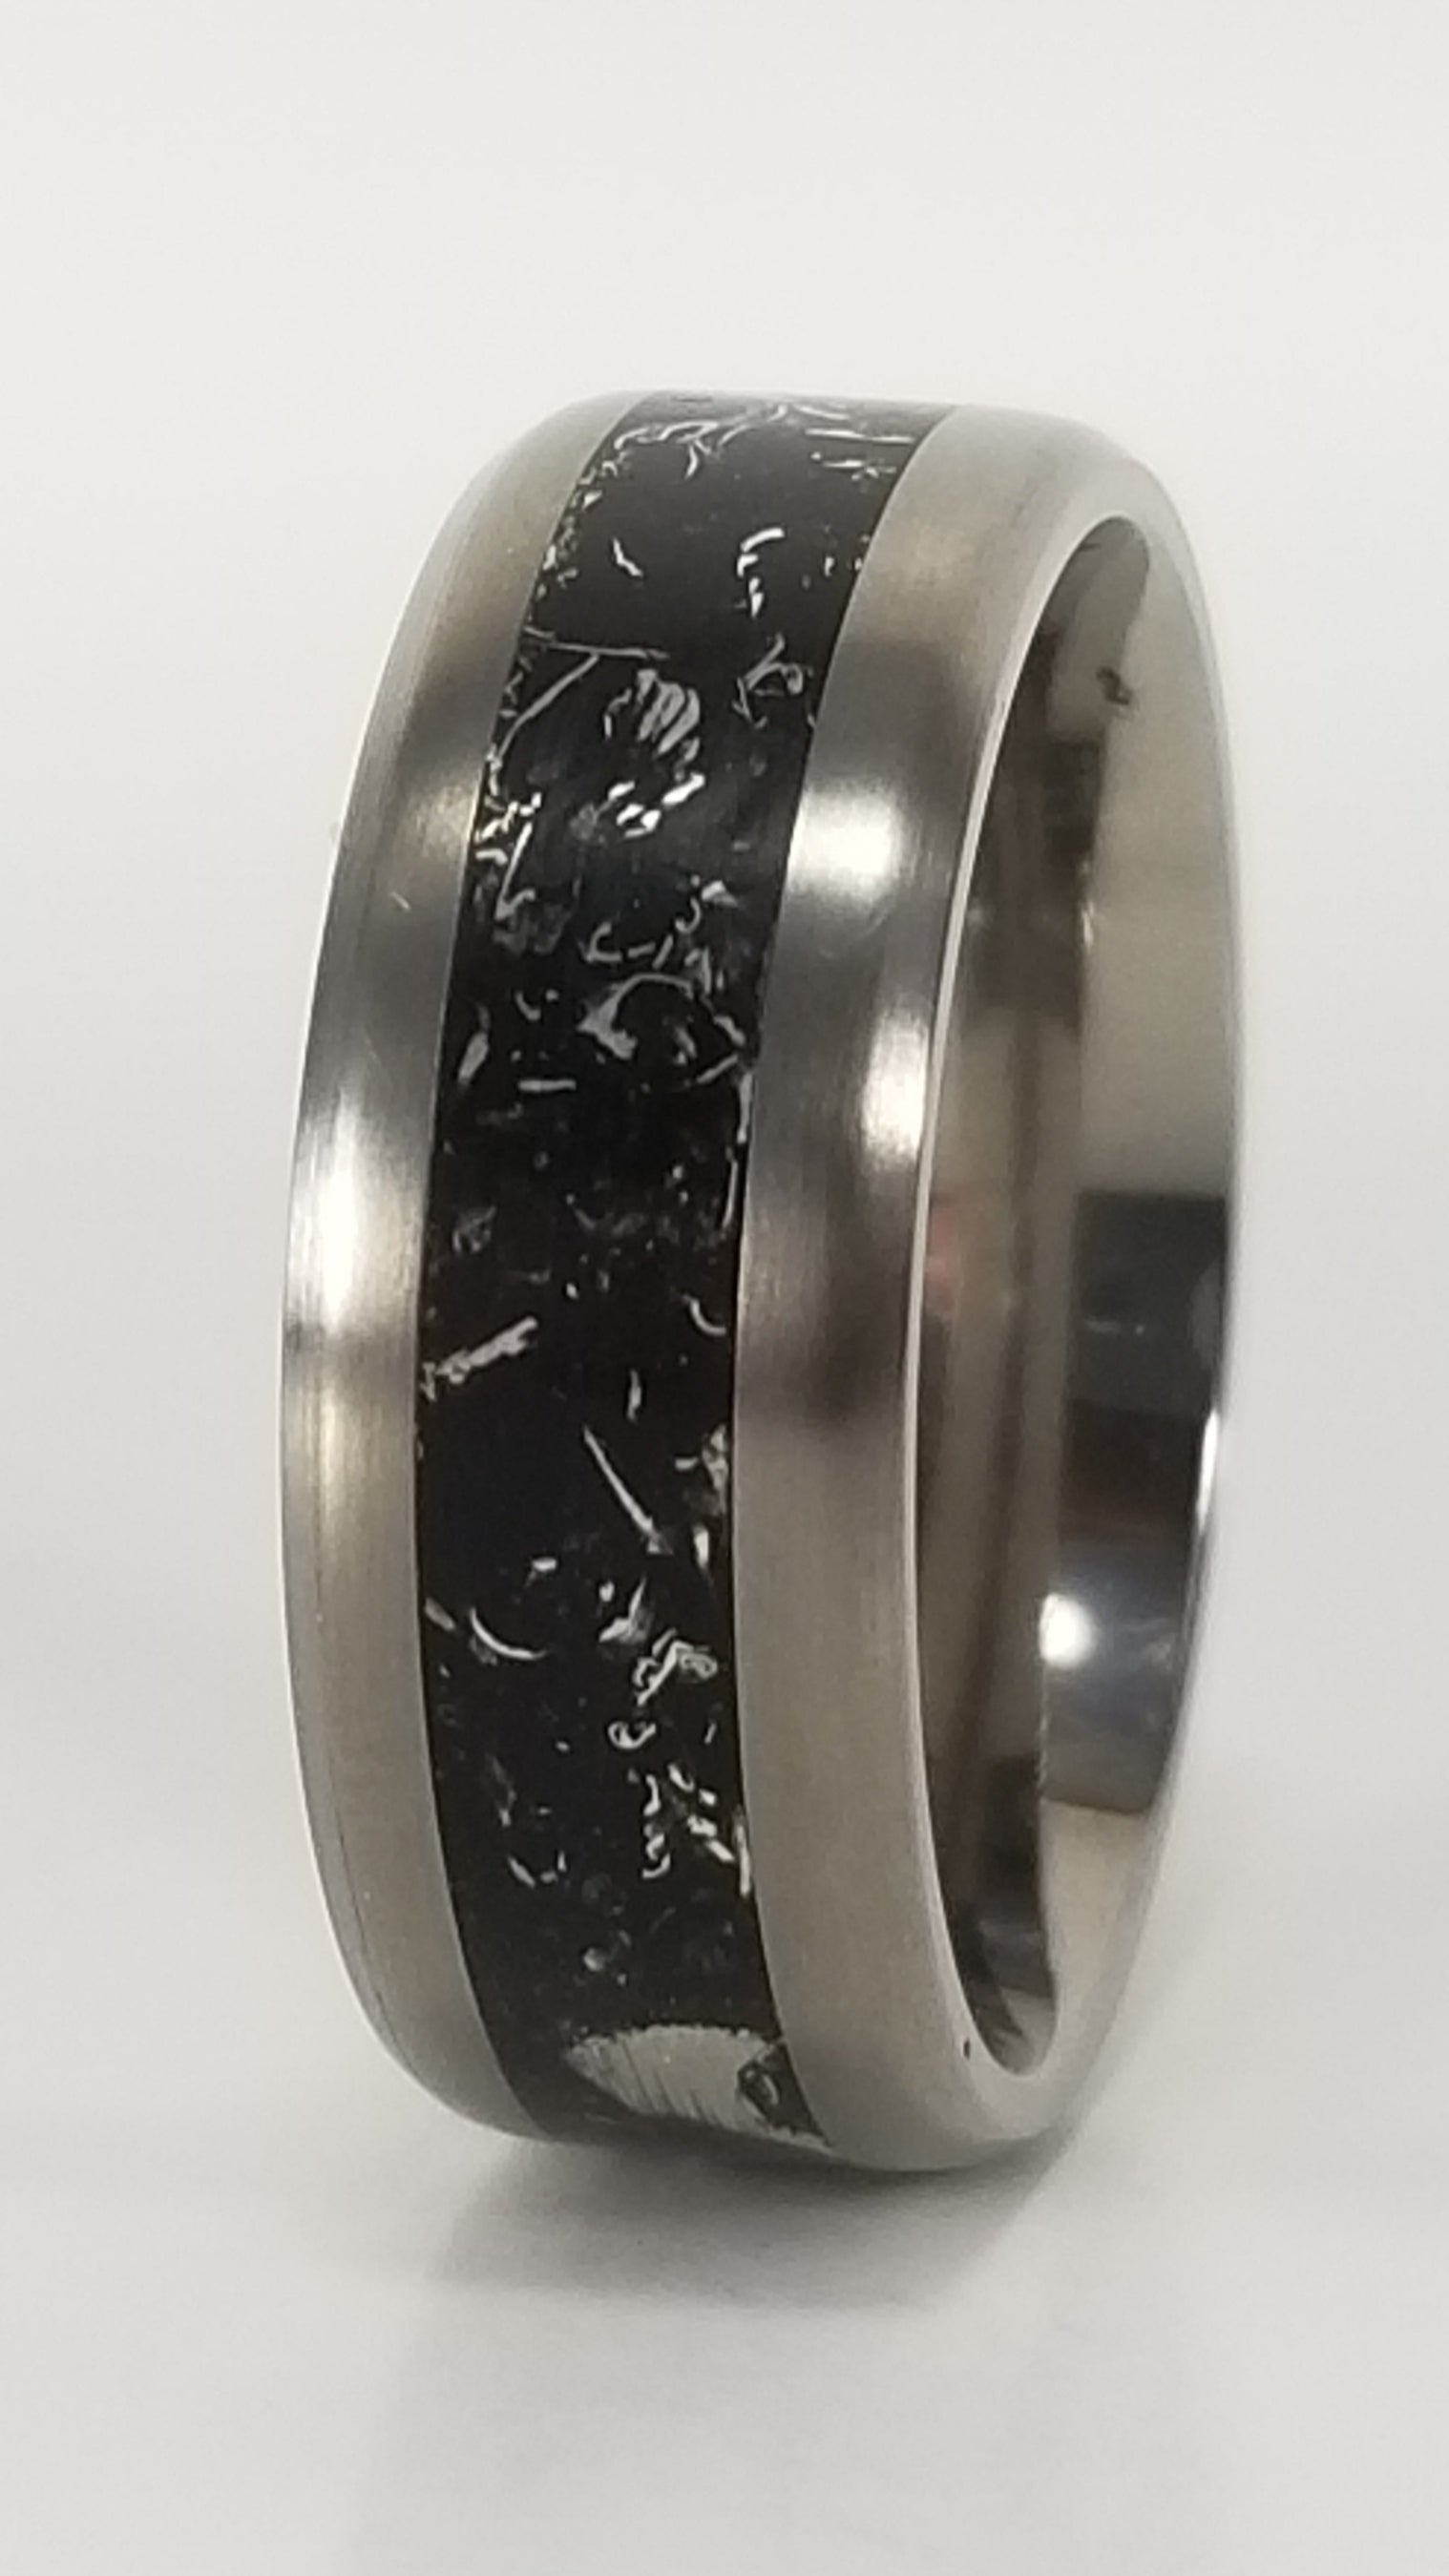 Captured Carbon Ring - Wide band